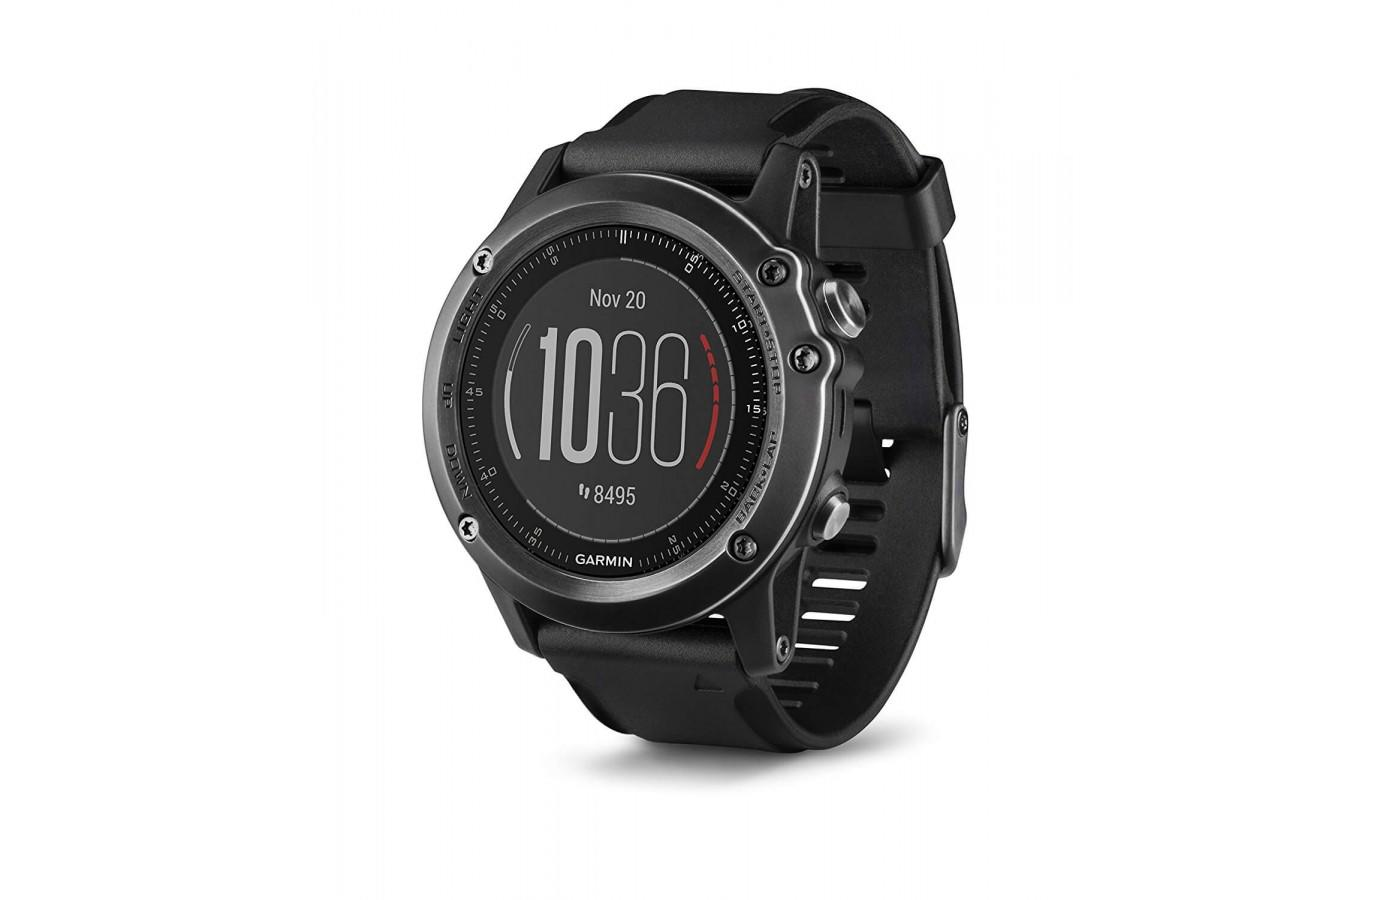 the Garmin fenix 3 HR is a versatile and powerful fitness tracker